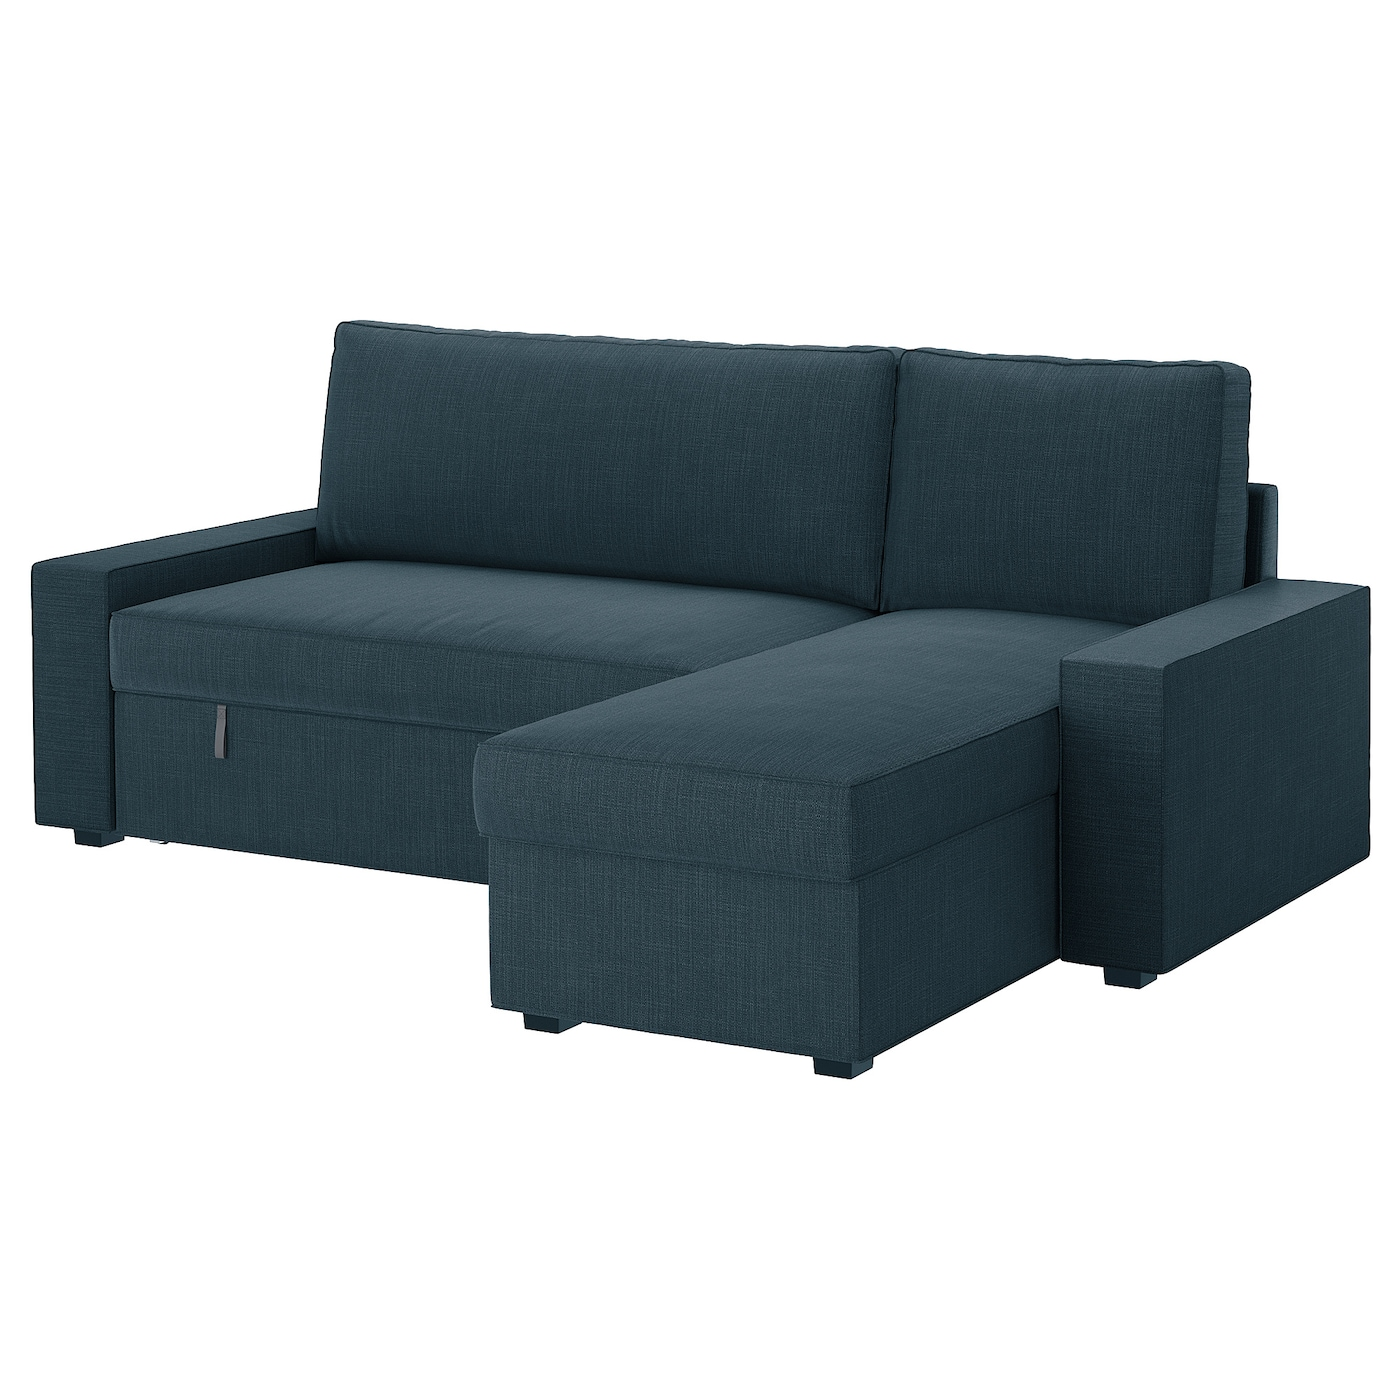 Vilasund sofa bed with chaise longue hillared dark blue ikea for Sofas con chaise longue